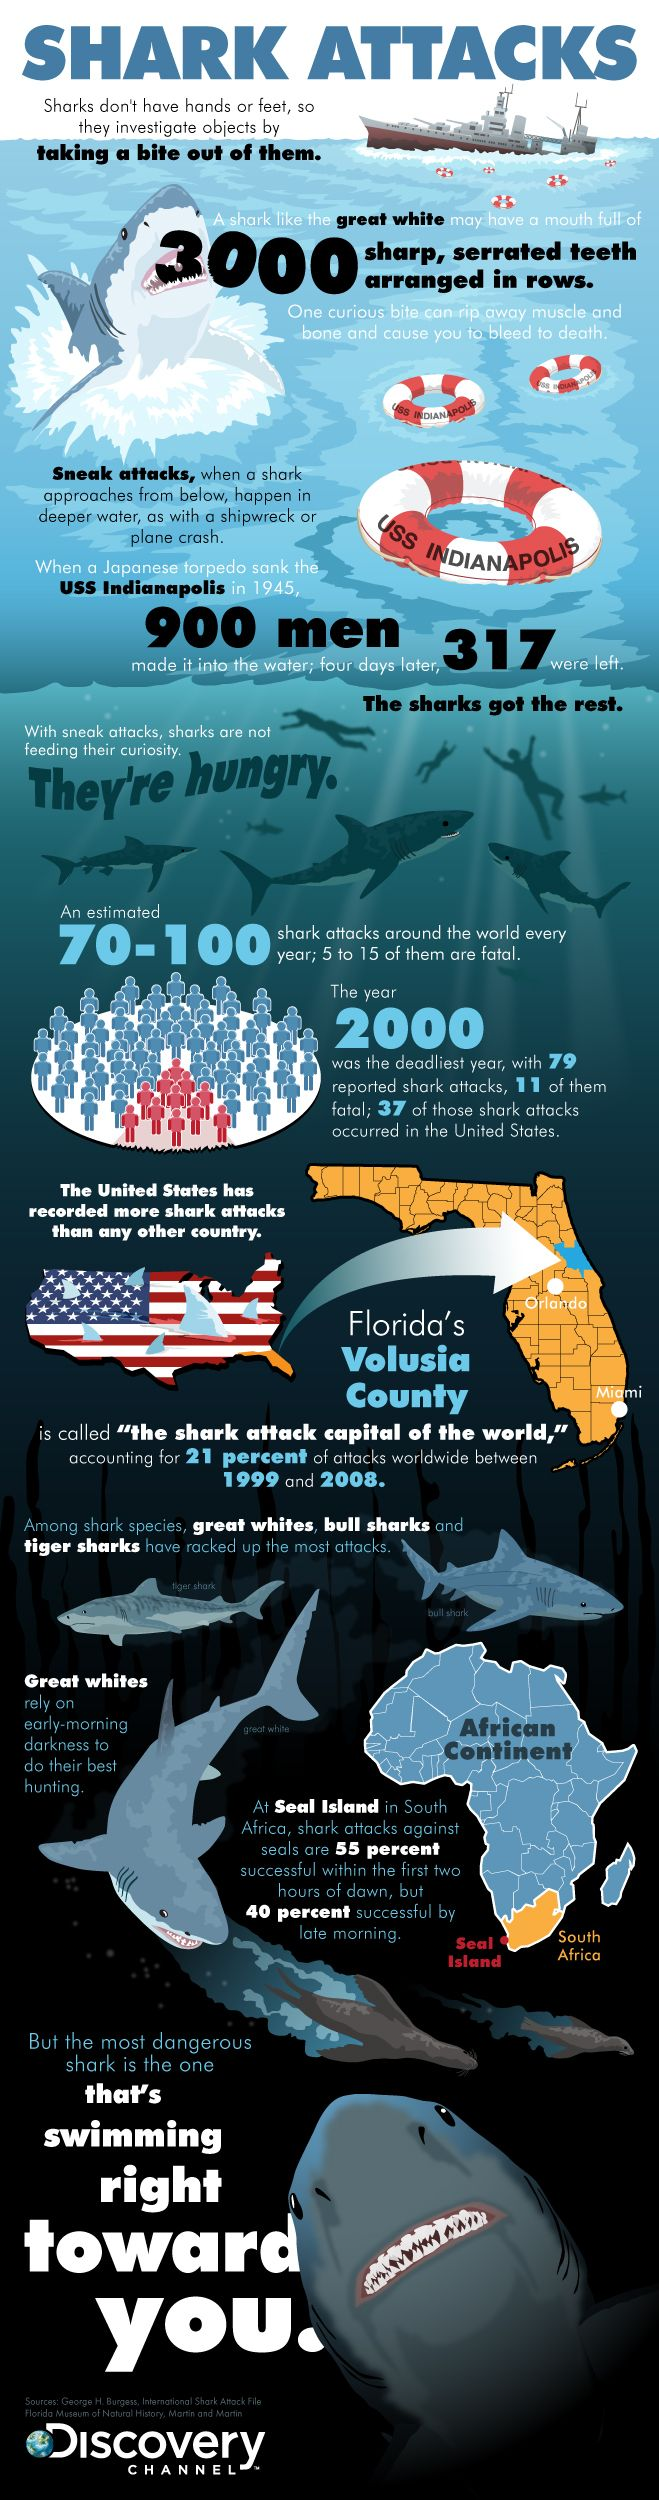 Shark Week 2013: A Tale of Tails, Fins, Shark Attack Infographic